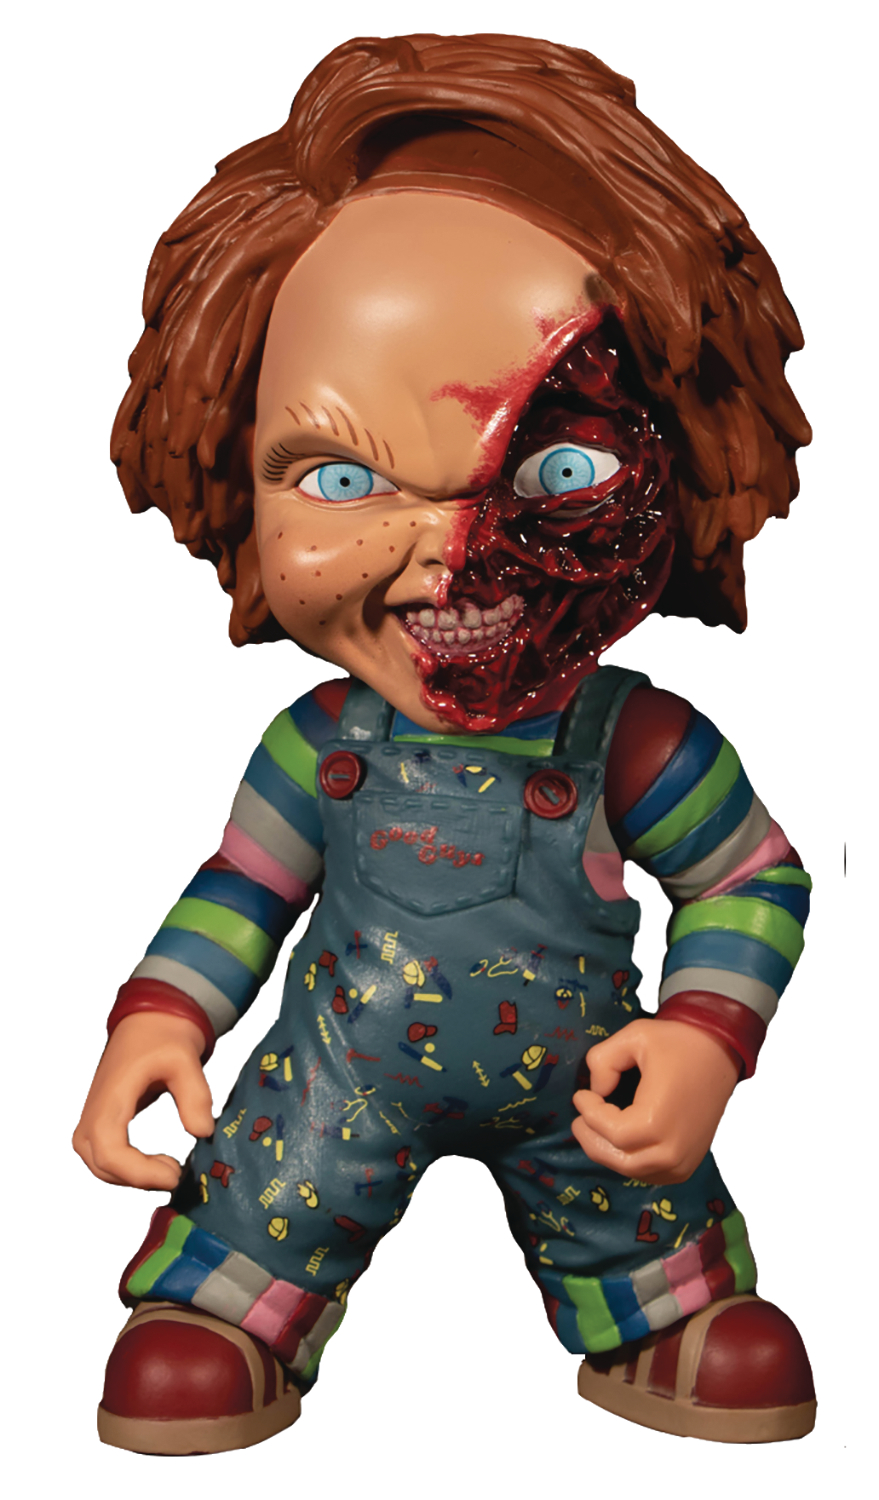 MEZCO DESIGNER SERIES CHILDS PLAY CHUCKY 6IN DELUXE FIGURE (